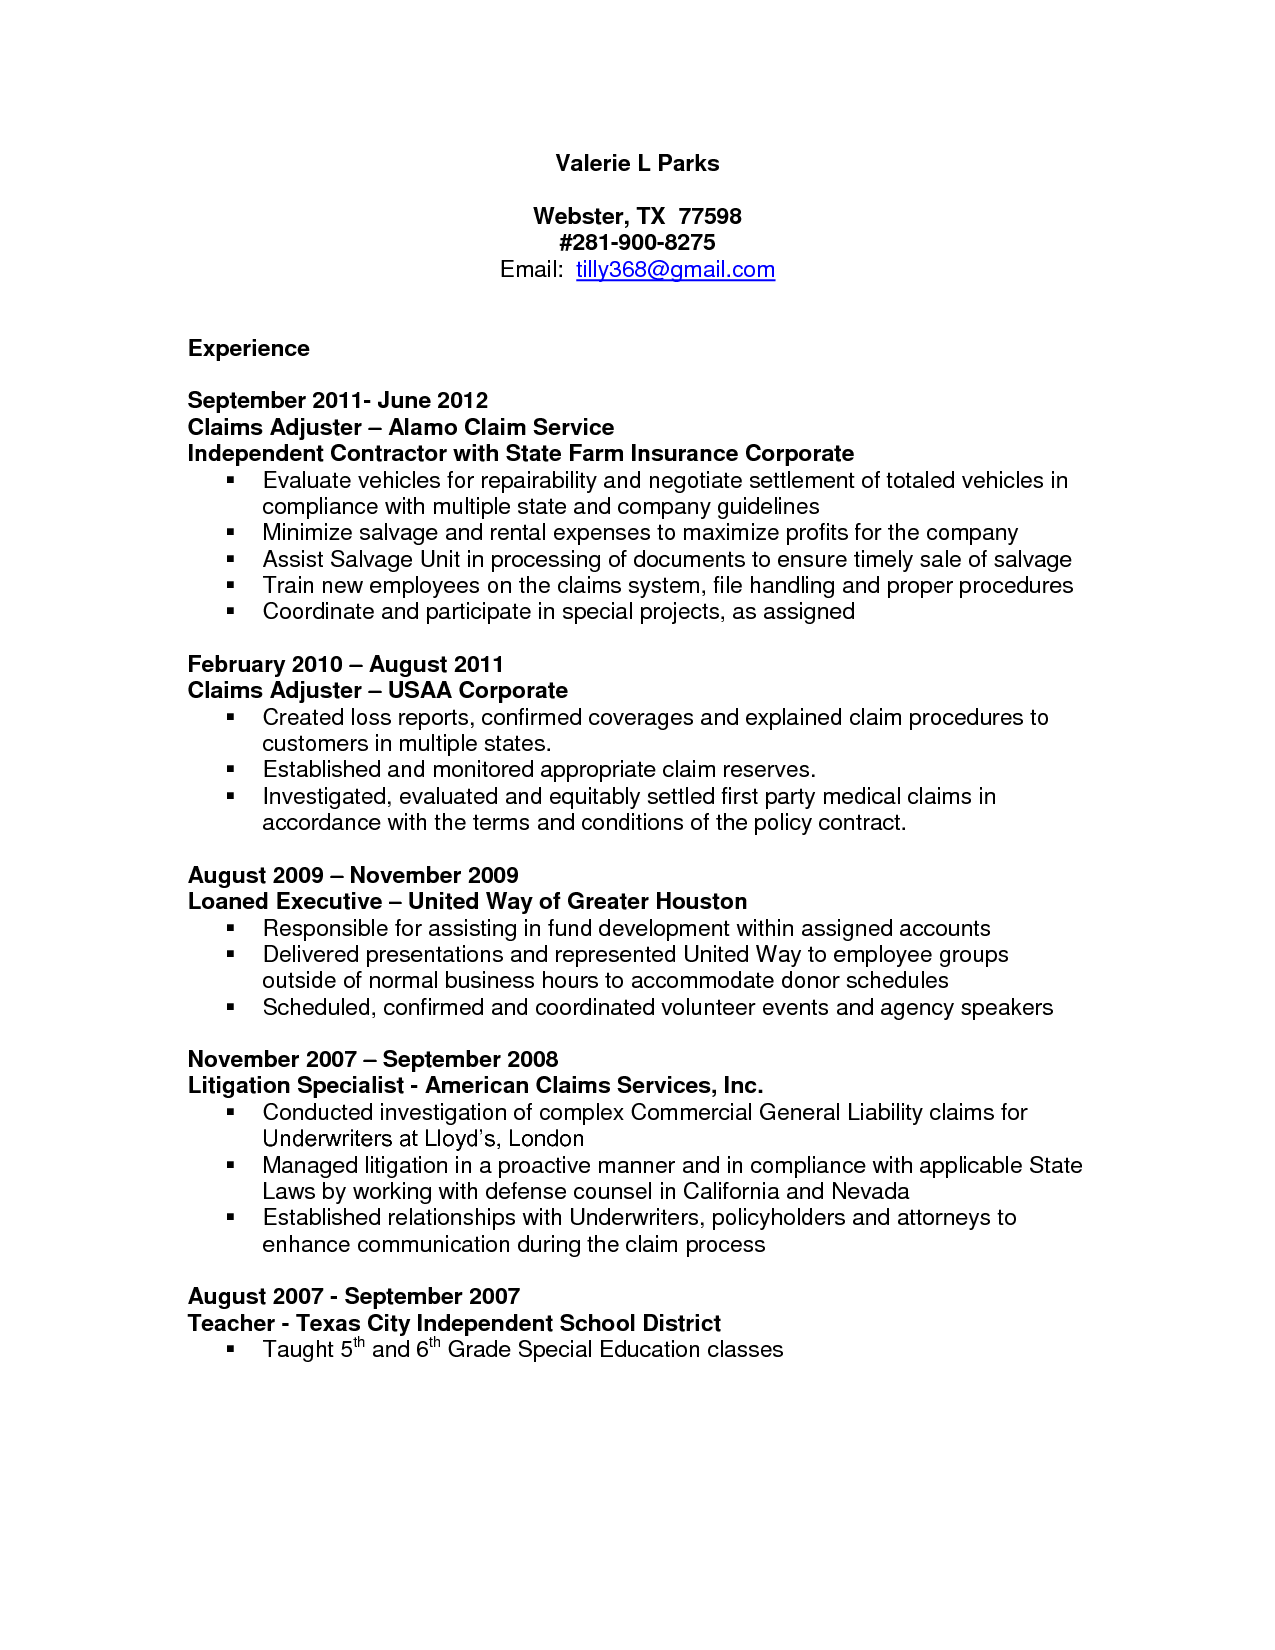 Claims Adjuster Resume Sample   Http://resumesdesign.com/claims Adjuster  Resume Sample/